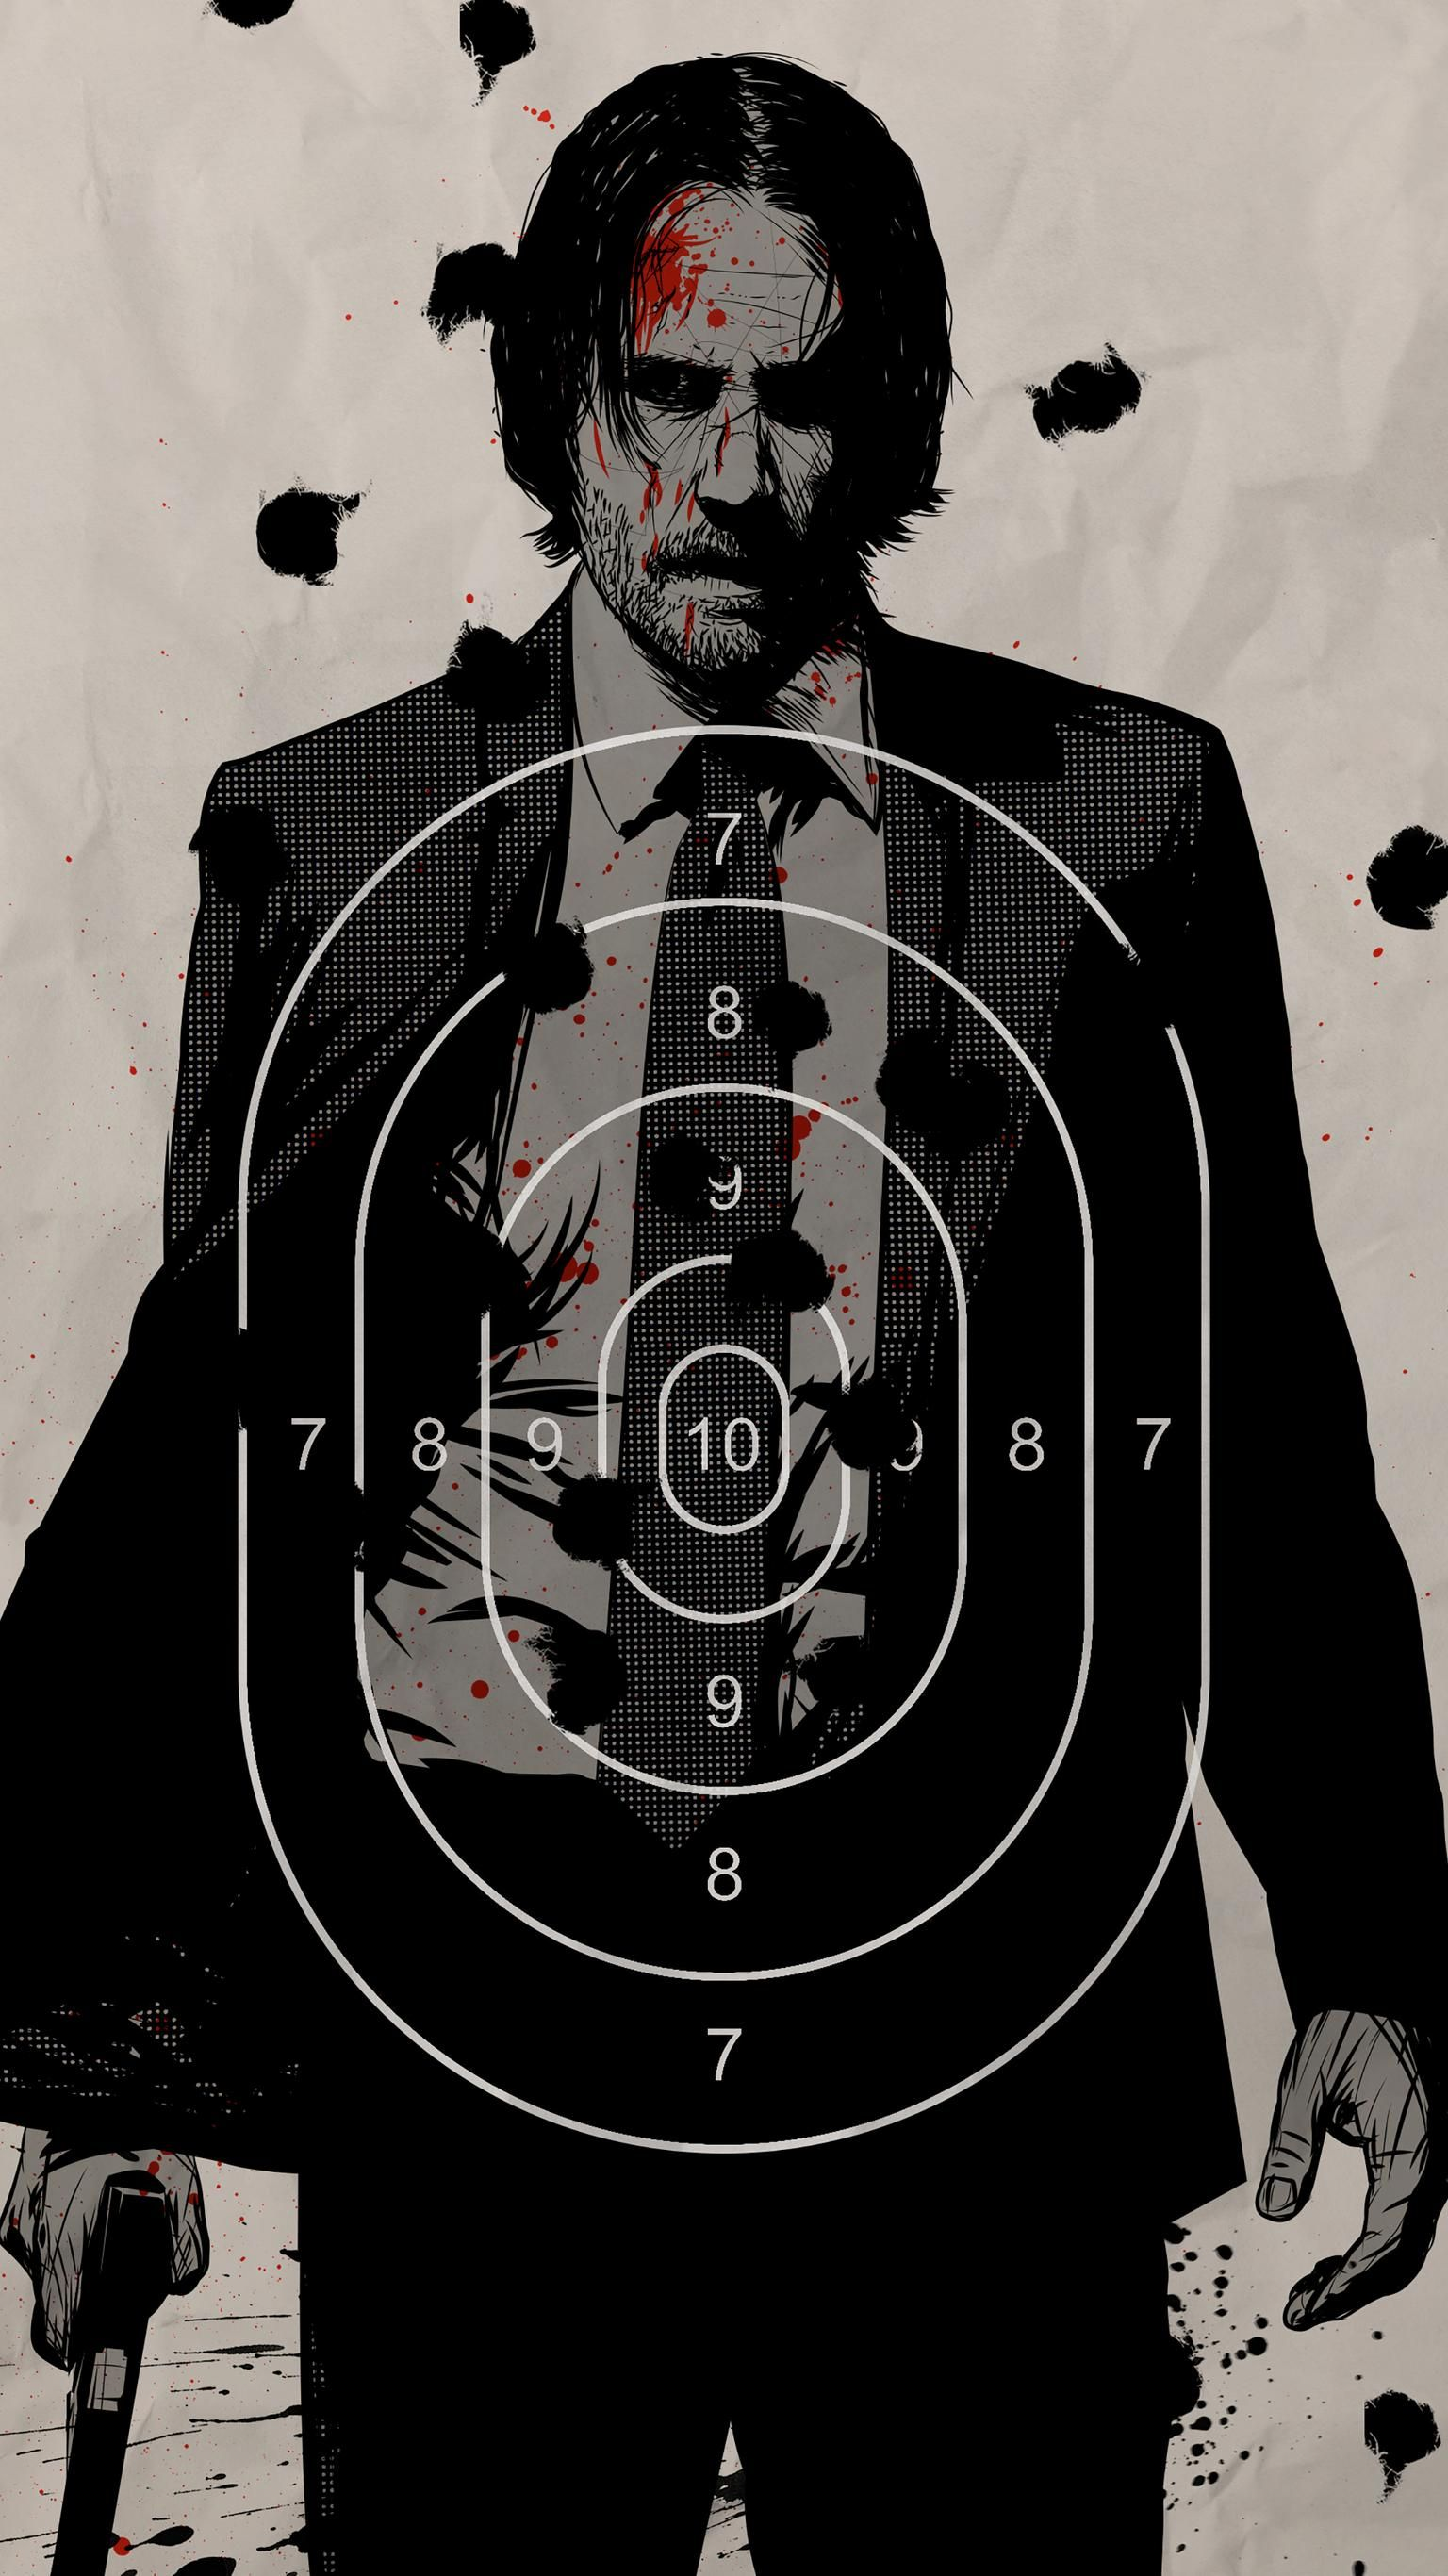 John Wick Chapter 2 2017 Phone Wallpaper Moviemania John Wick Movie Movie Posters Cinema Posters